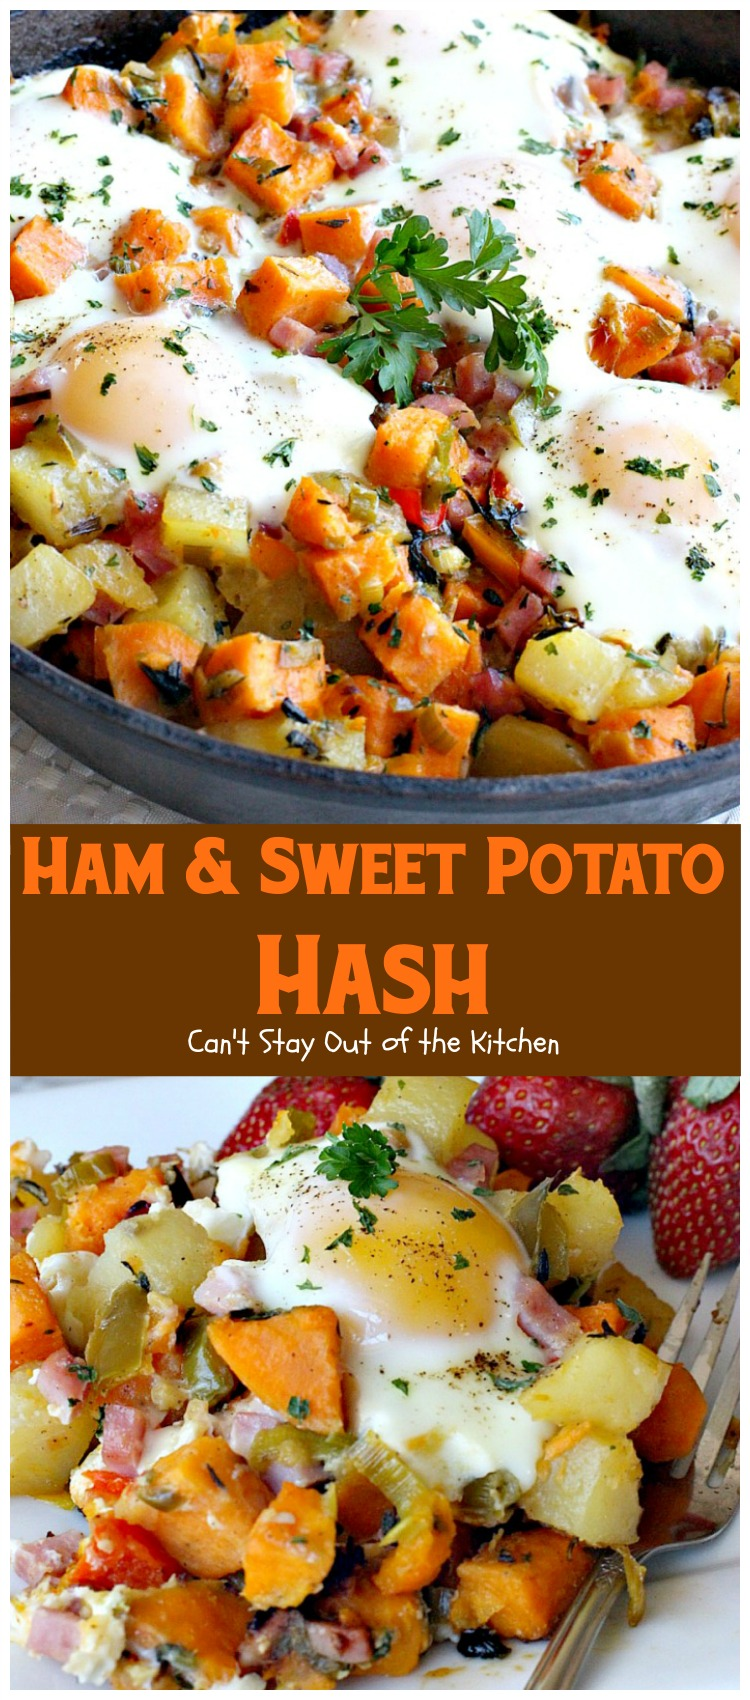 Ham and Sweet Potato Hash - Can't Stay Out of the Kitchen